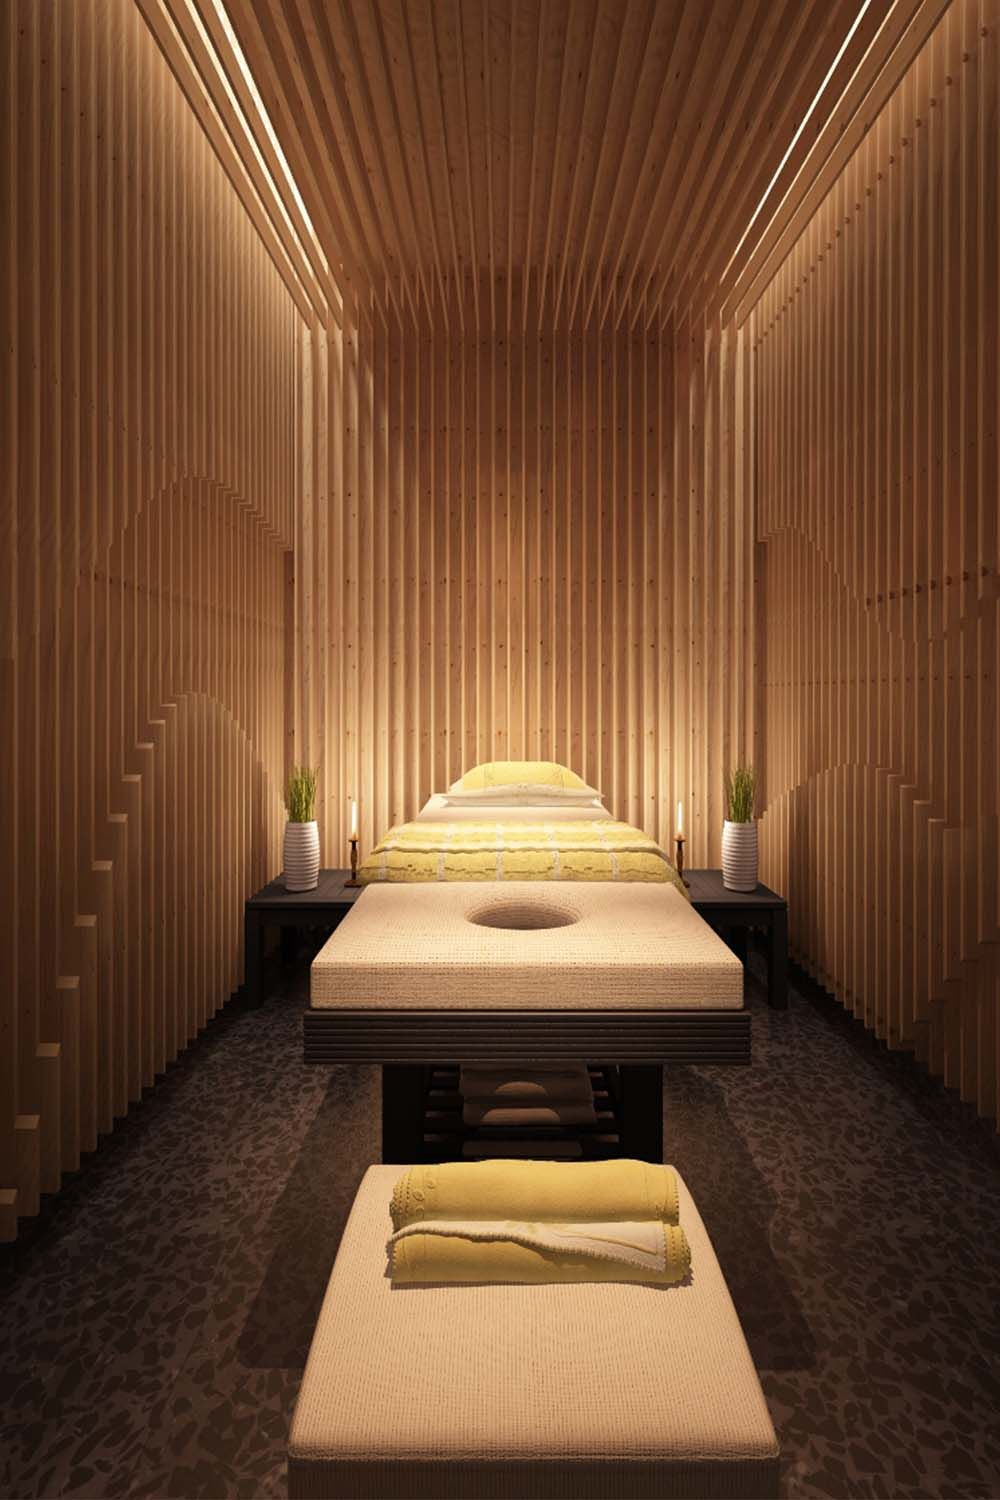 Pin By I Fva On Hotel Resort Alba Queen Hotel With Images Spa Rooms Spa Treatment Room Indoor Spa